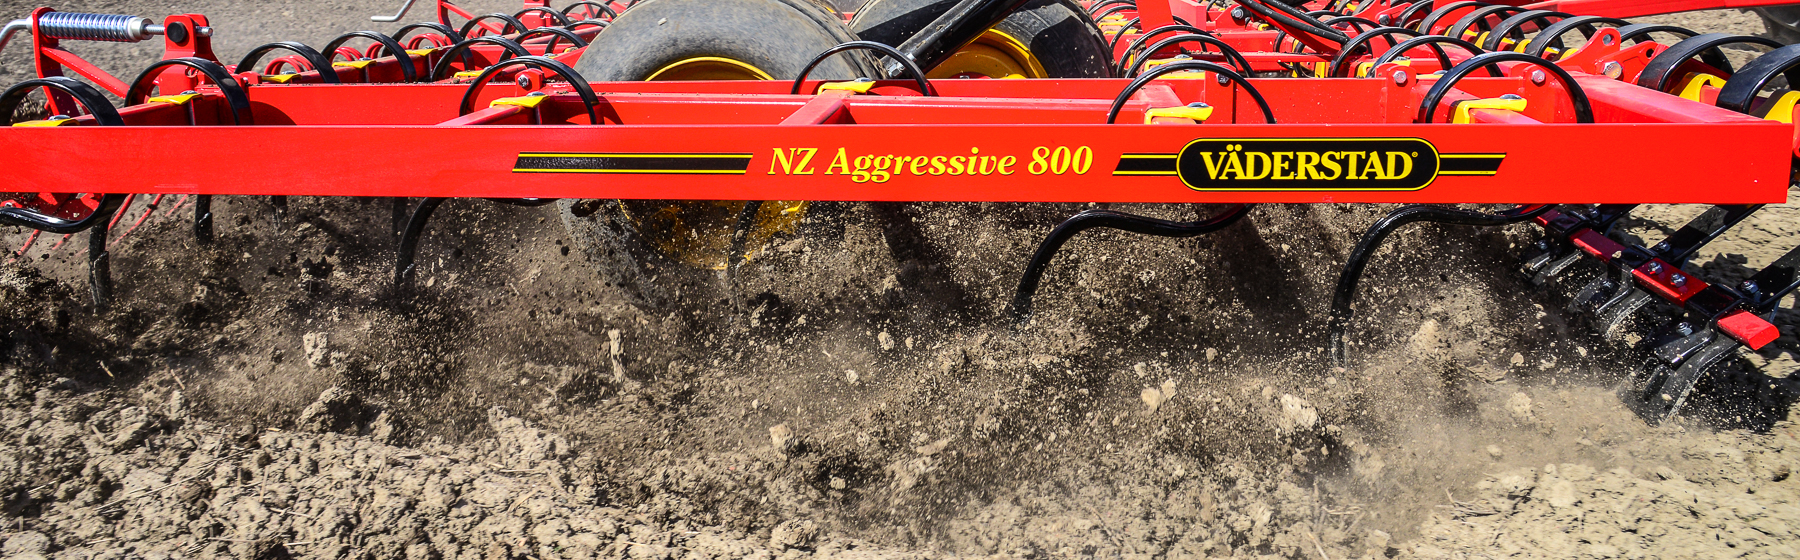 NZ Aggressive tines vibrating